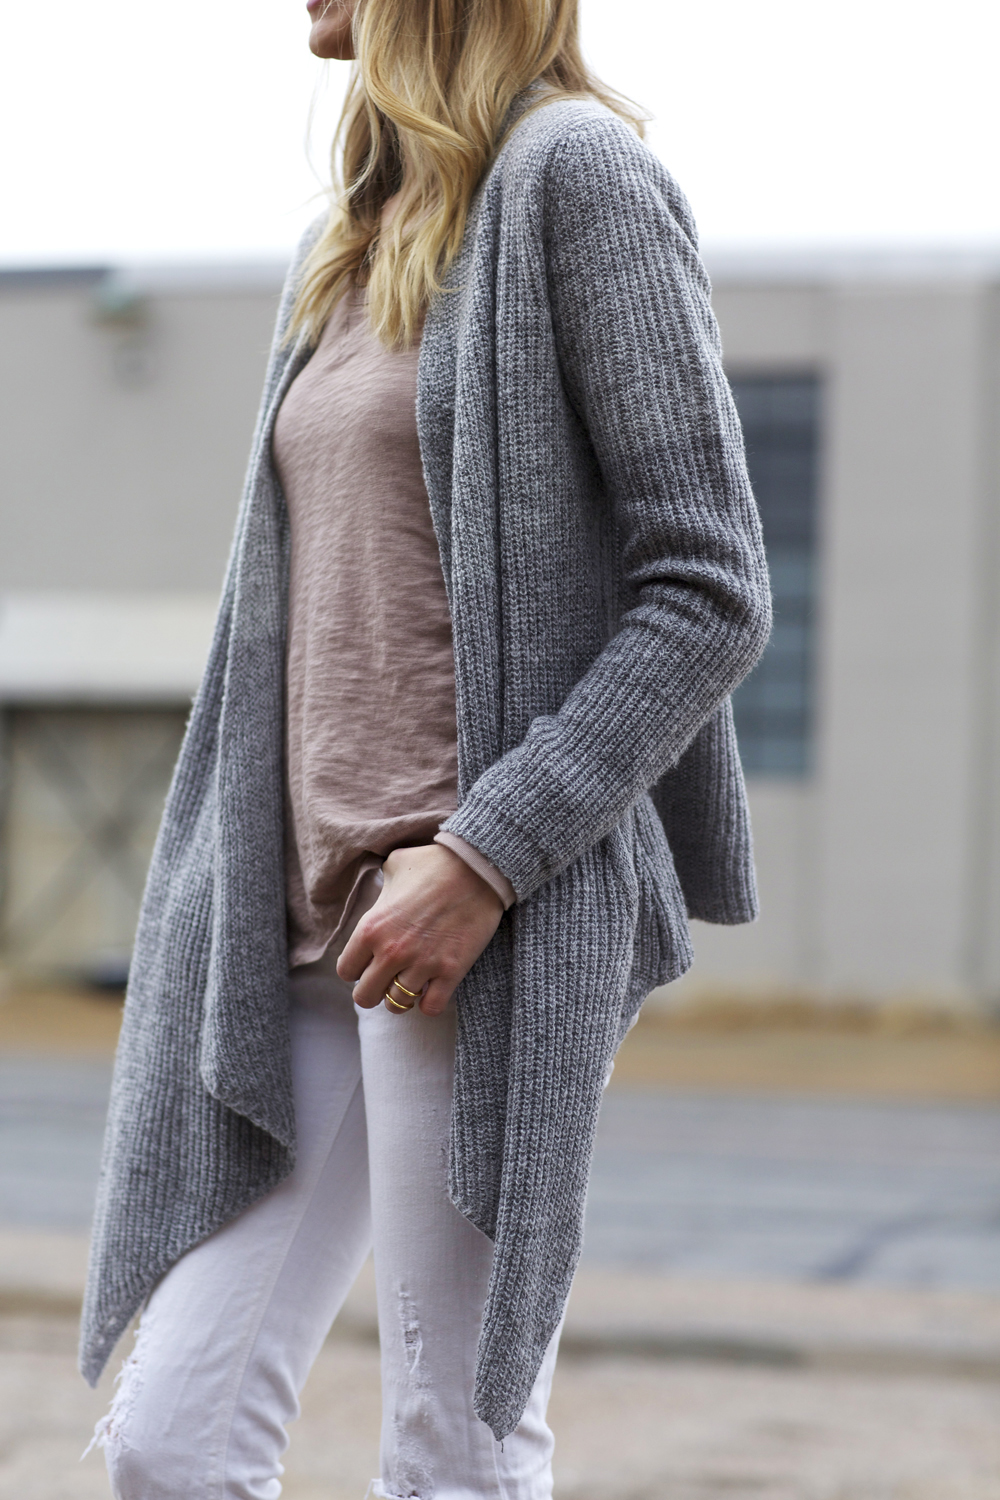 GREY COZY CARDIGAN | Fashion Jackson